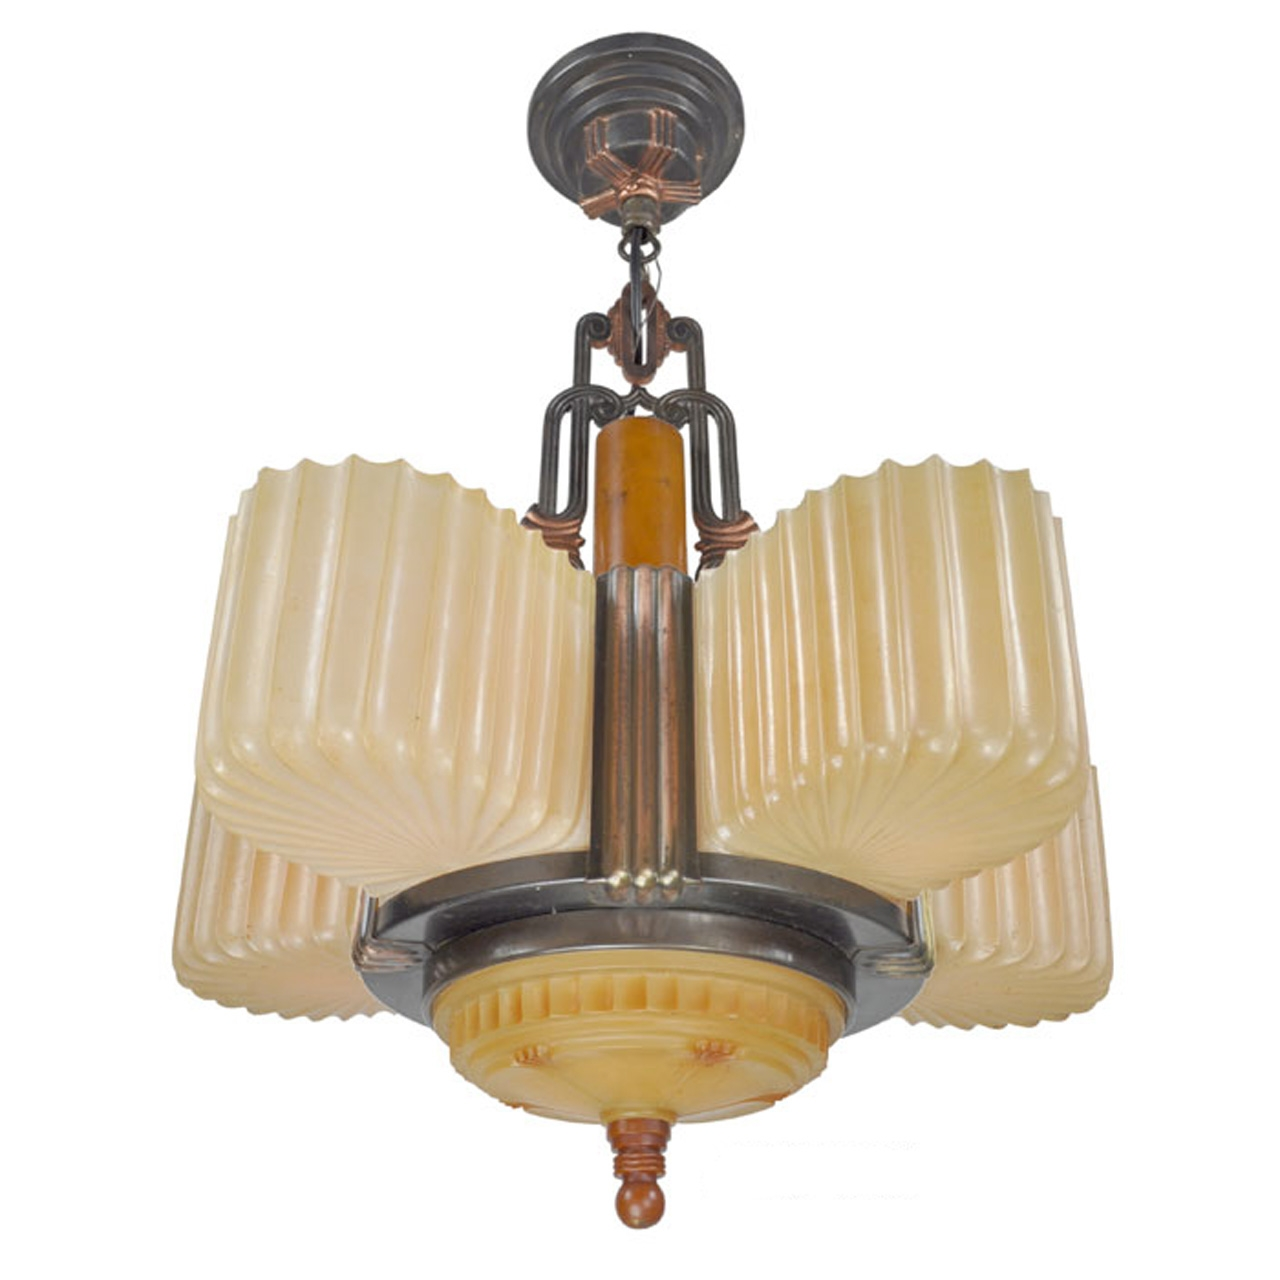 Antique Art Deco Chandelier Antique Furniture Throughout Art Deco Chandeliers (Image 4 of 15)